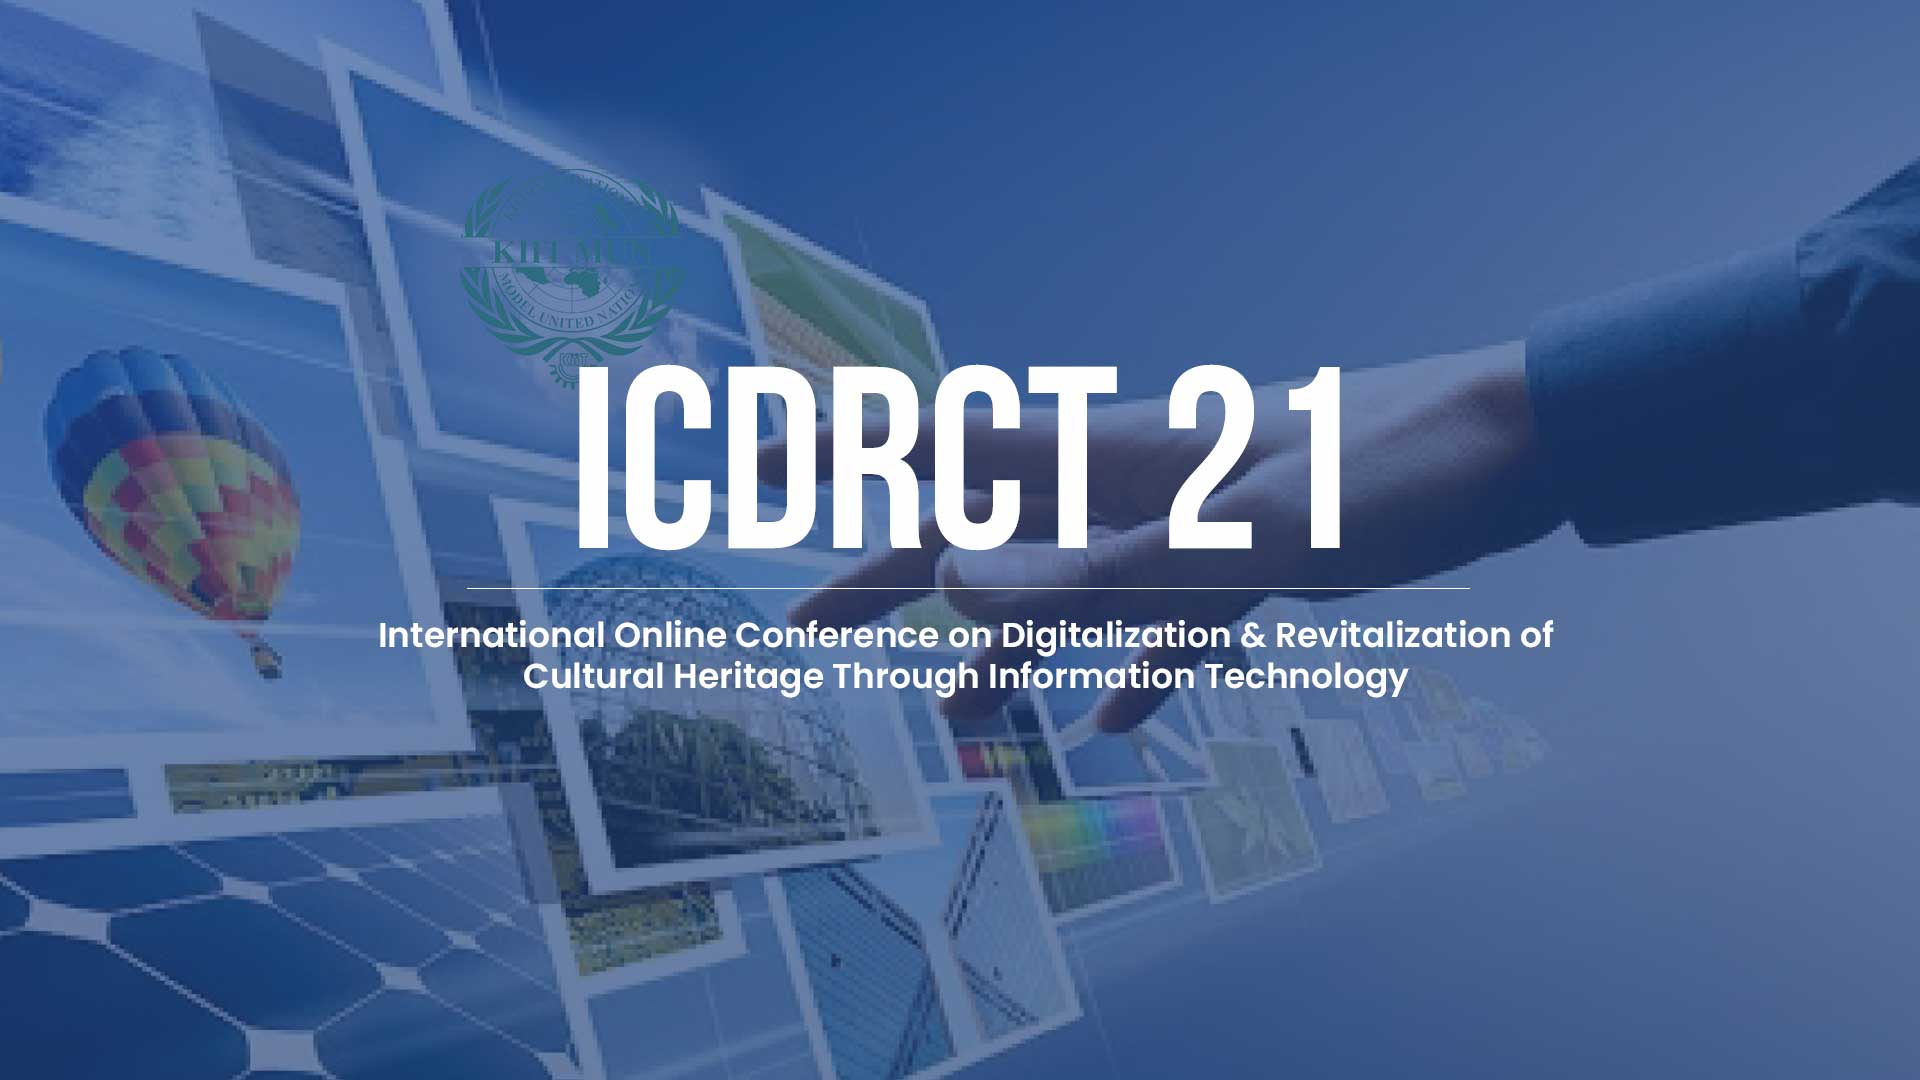 ICDRCT 21 - International Online Conference on Digitalization & Revitalization of Cultural Heritage Through Information Technology